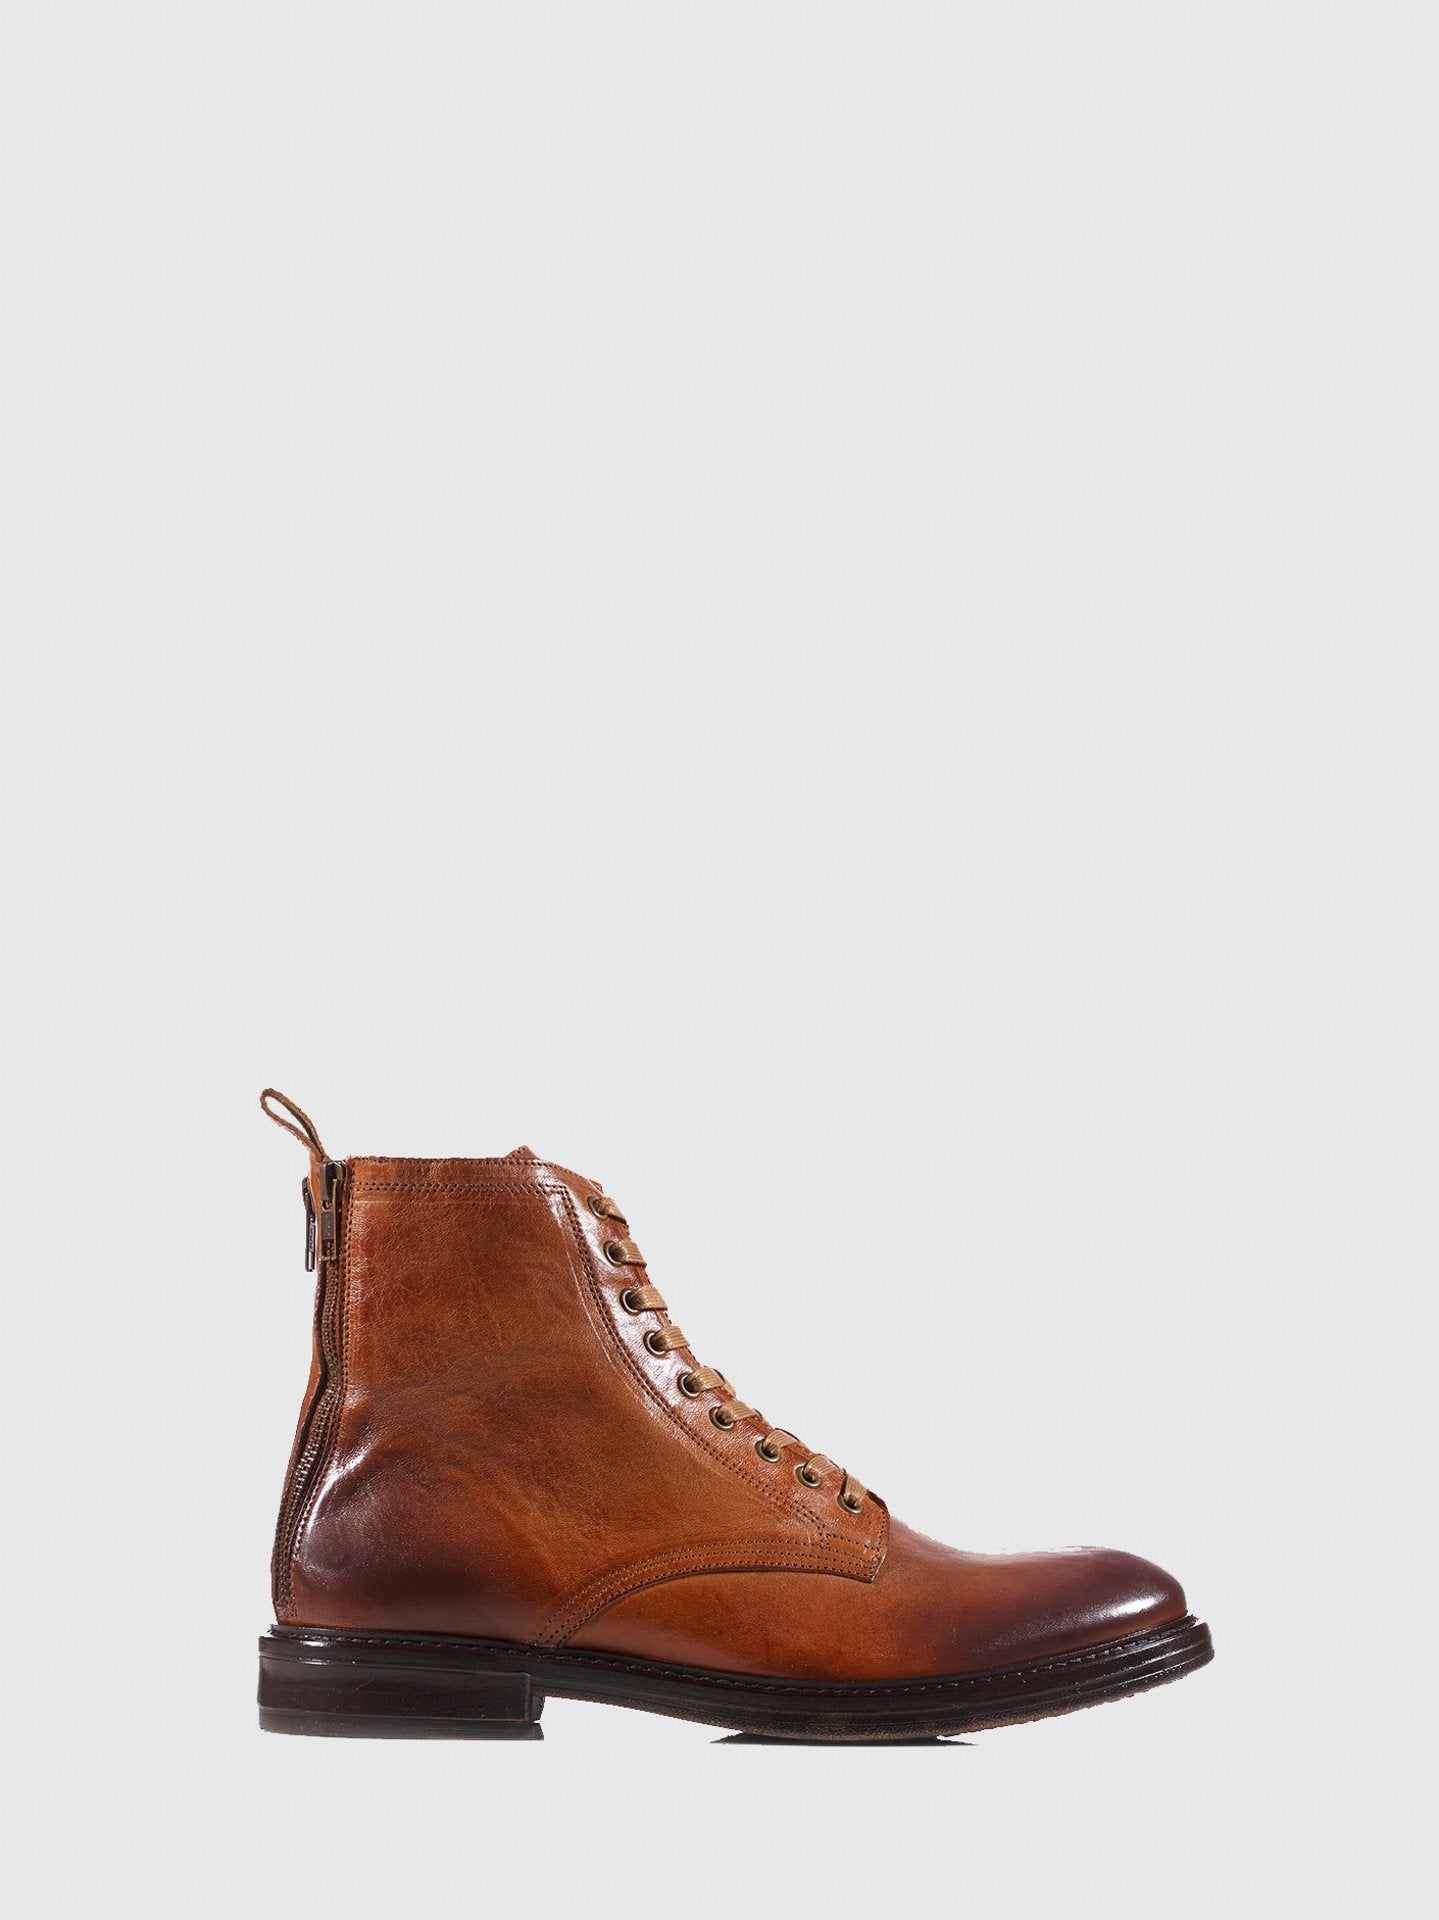 Nobrand Caramel Brown Military Boots